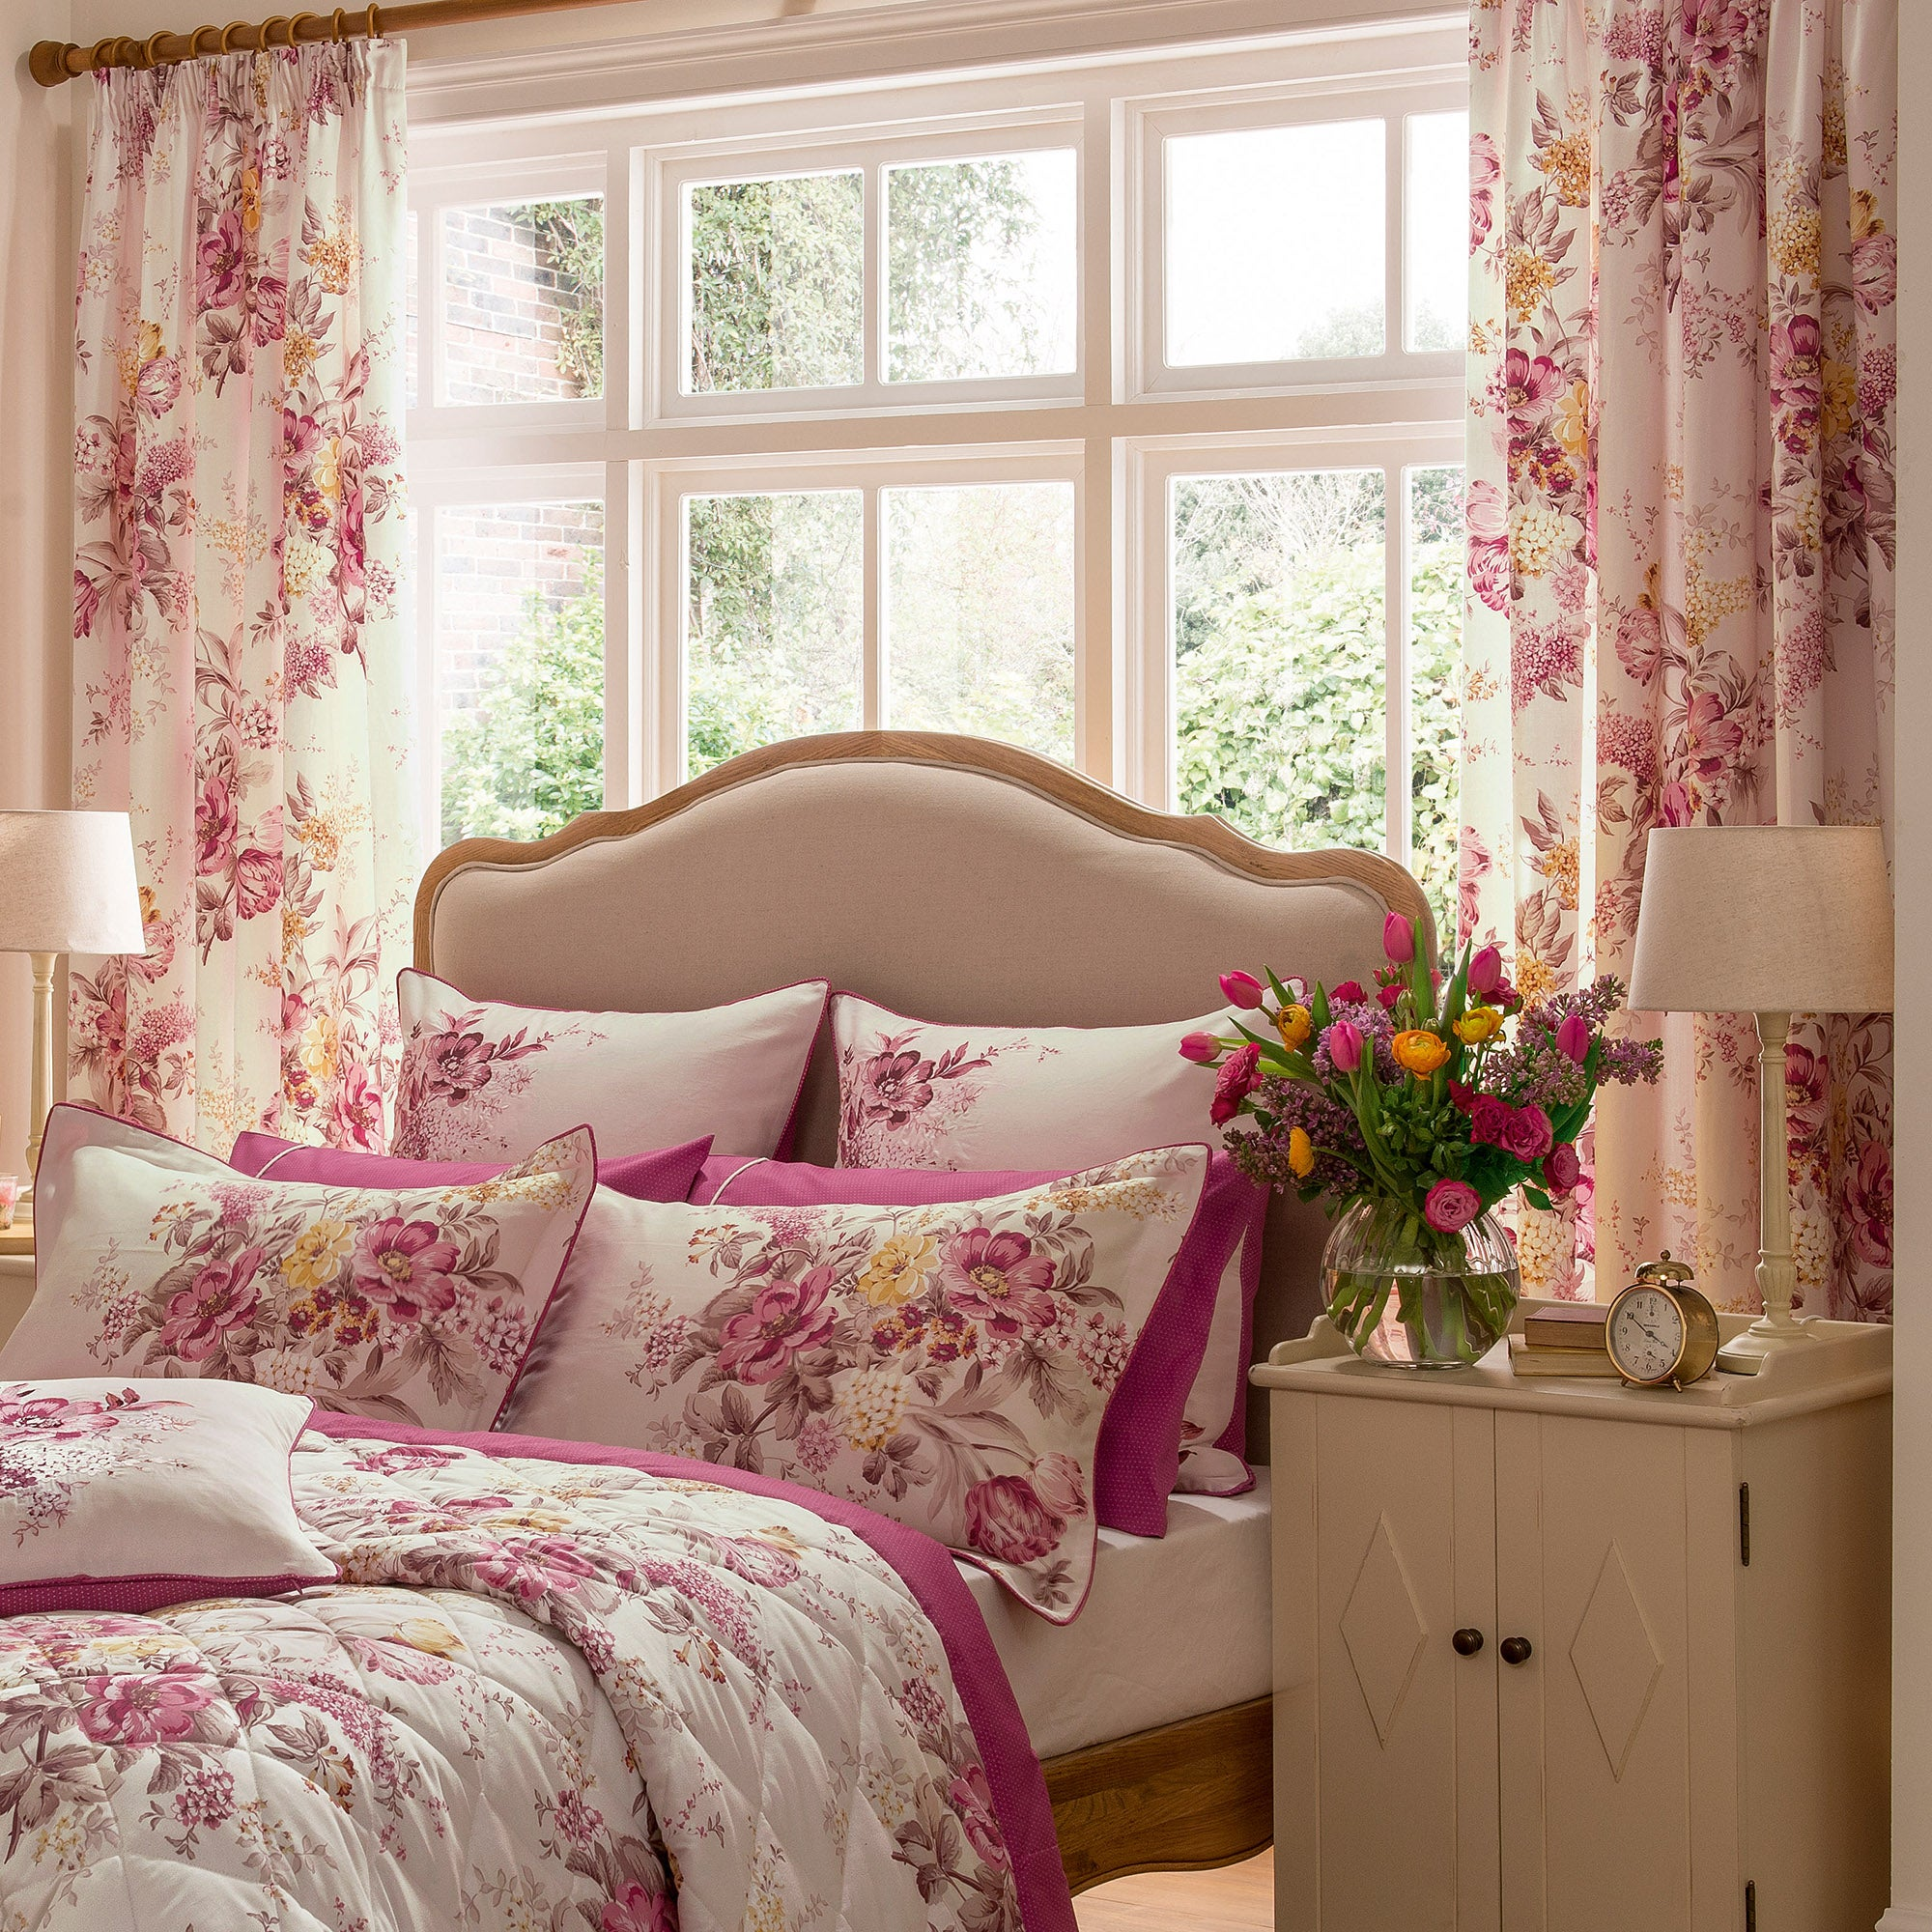 Dorma Pink Camilla Lined Pencil Pleat Curtains